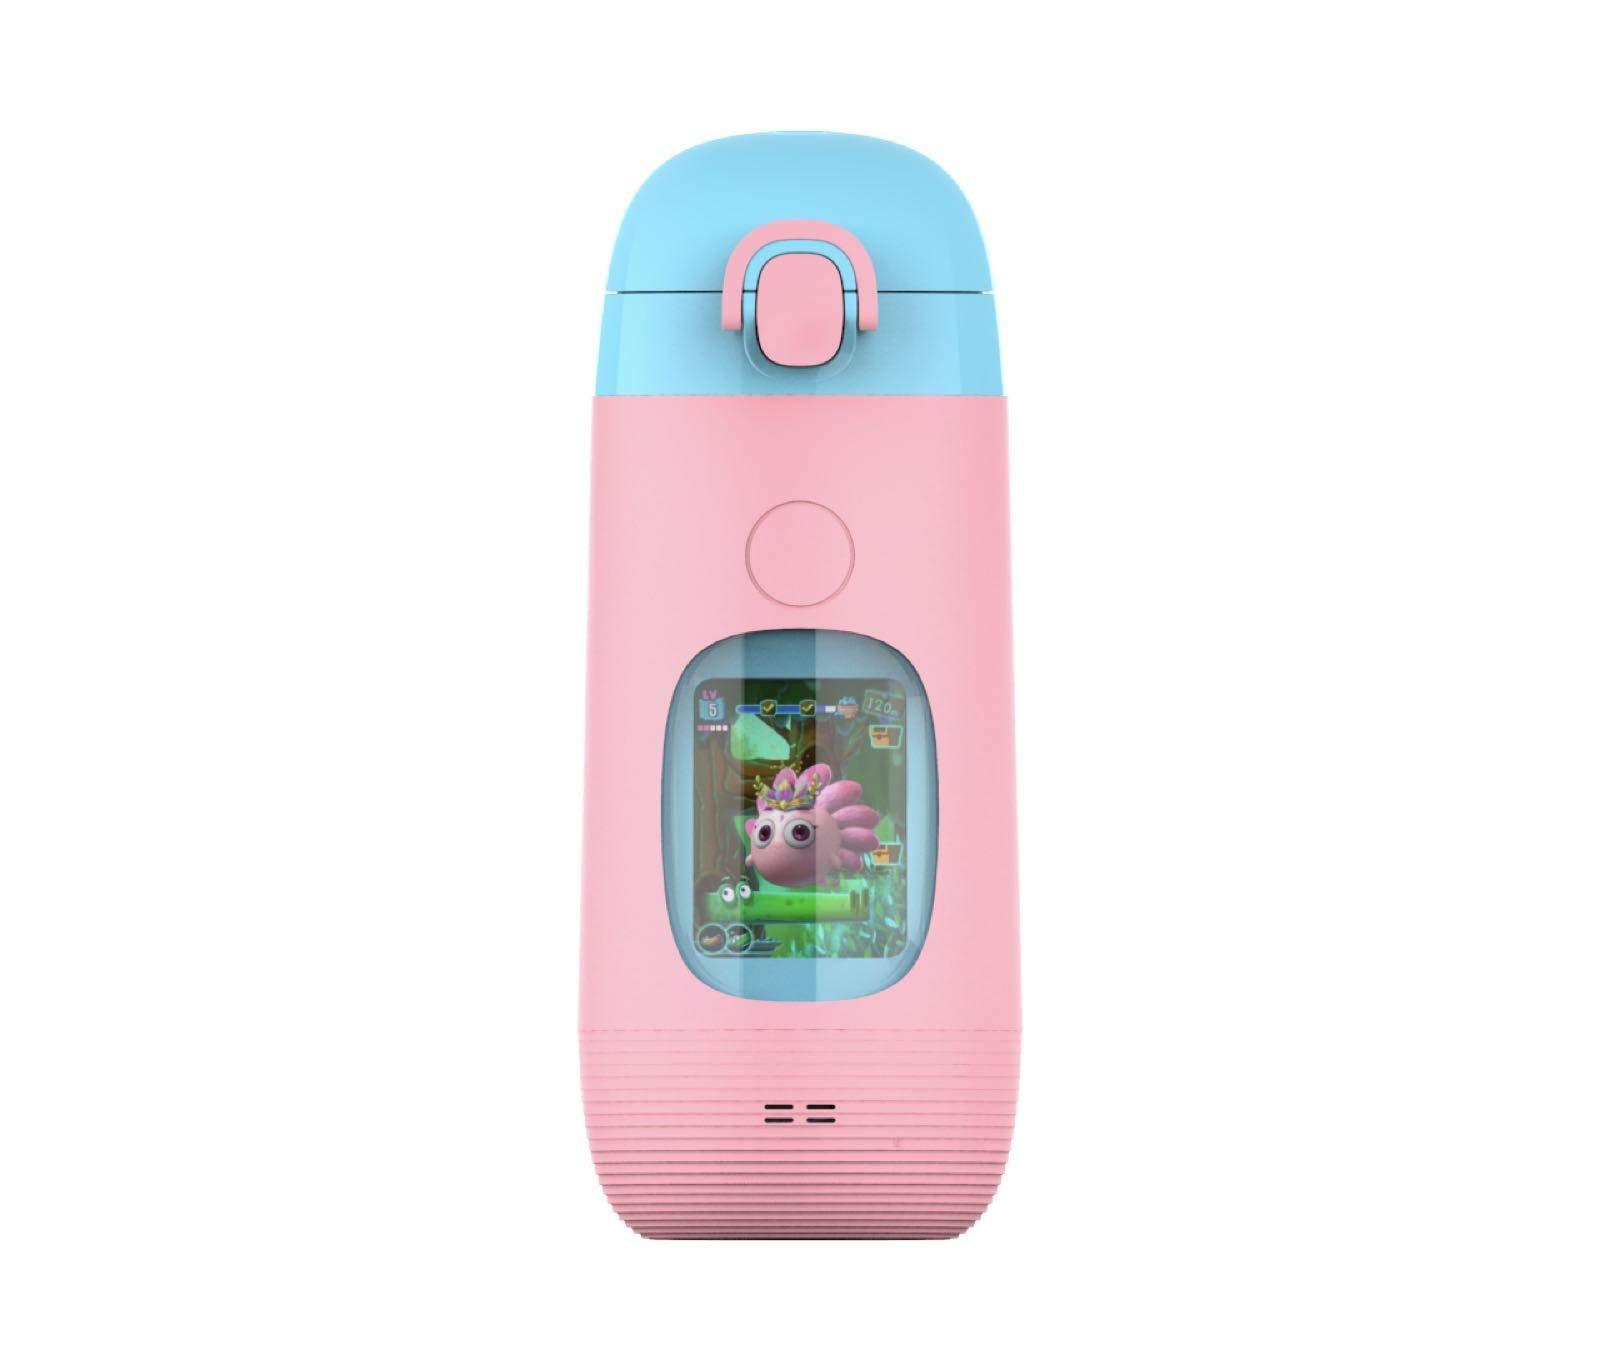 Smart Water Bottle for Kids - GululuGo Interactive Water Bottle Includes Games and Stories Along with a Health Tracking Smartphone App, 350ml Smart Water Bottle for Kids